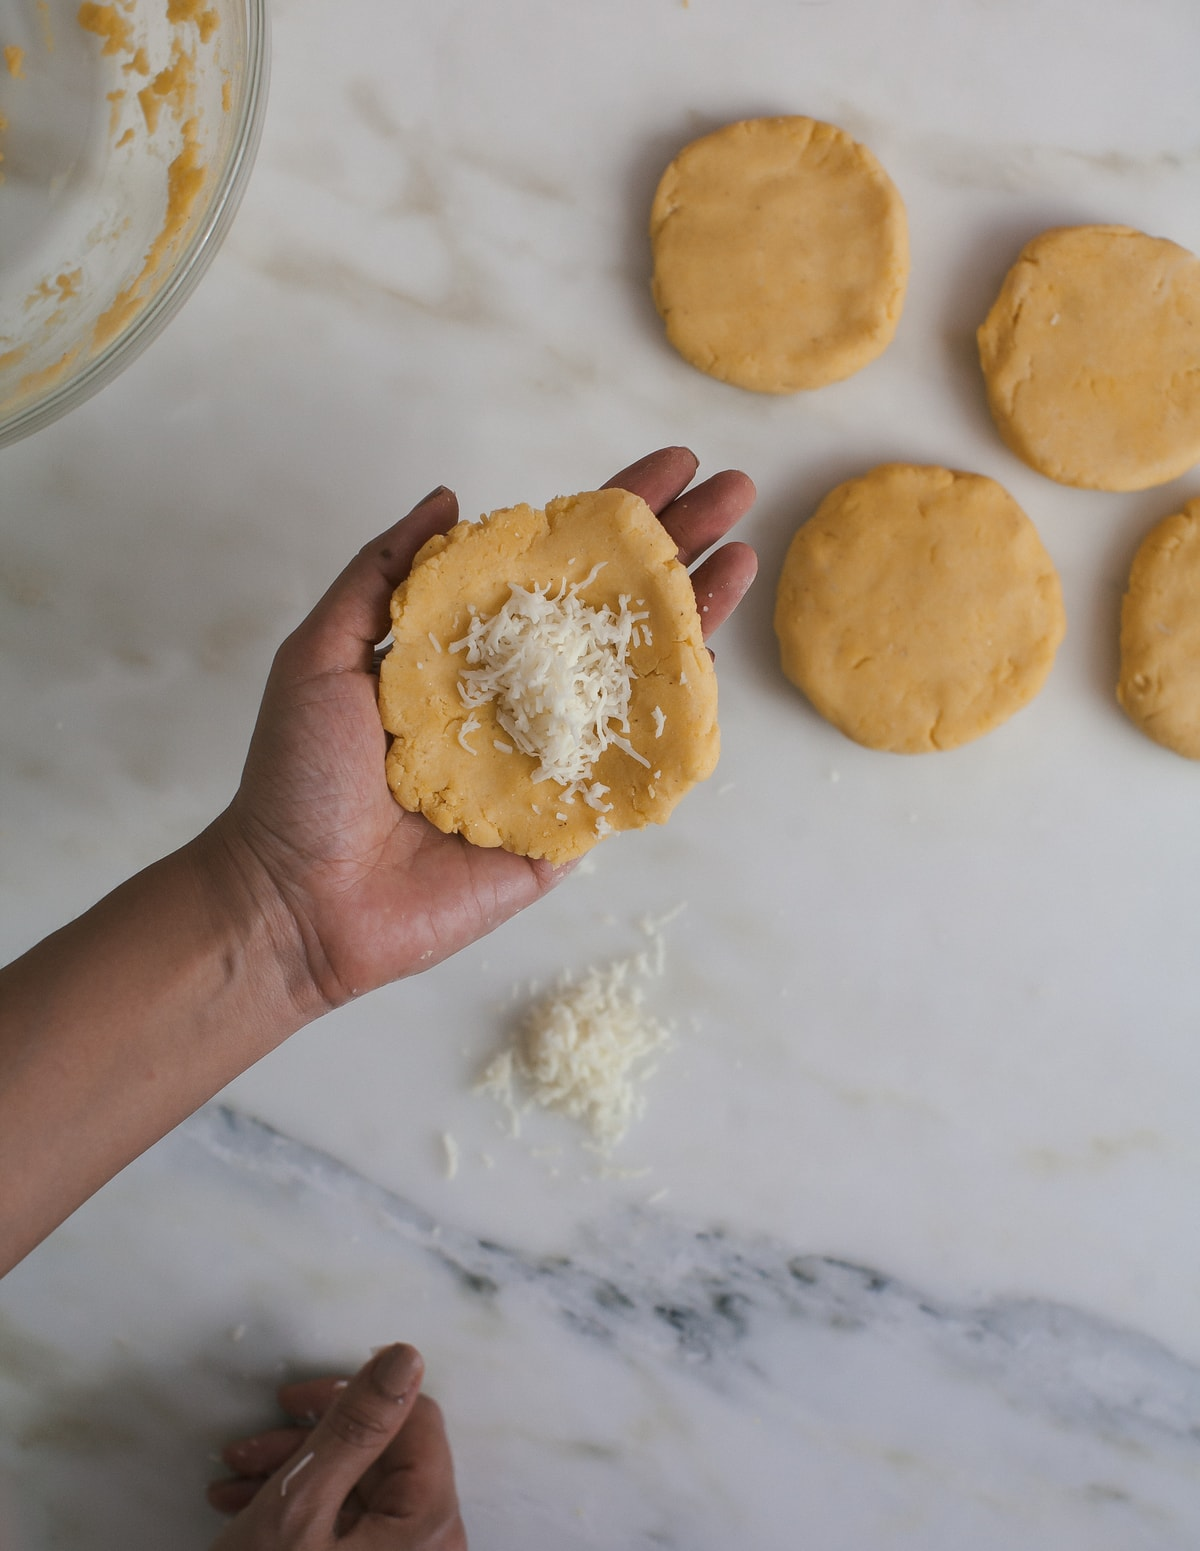 Arepas dough being stuffed with cheese